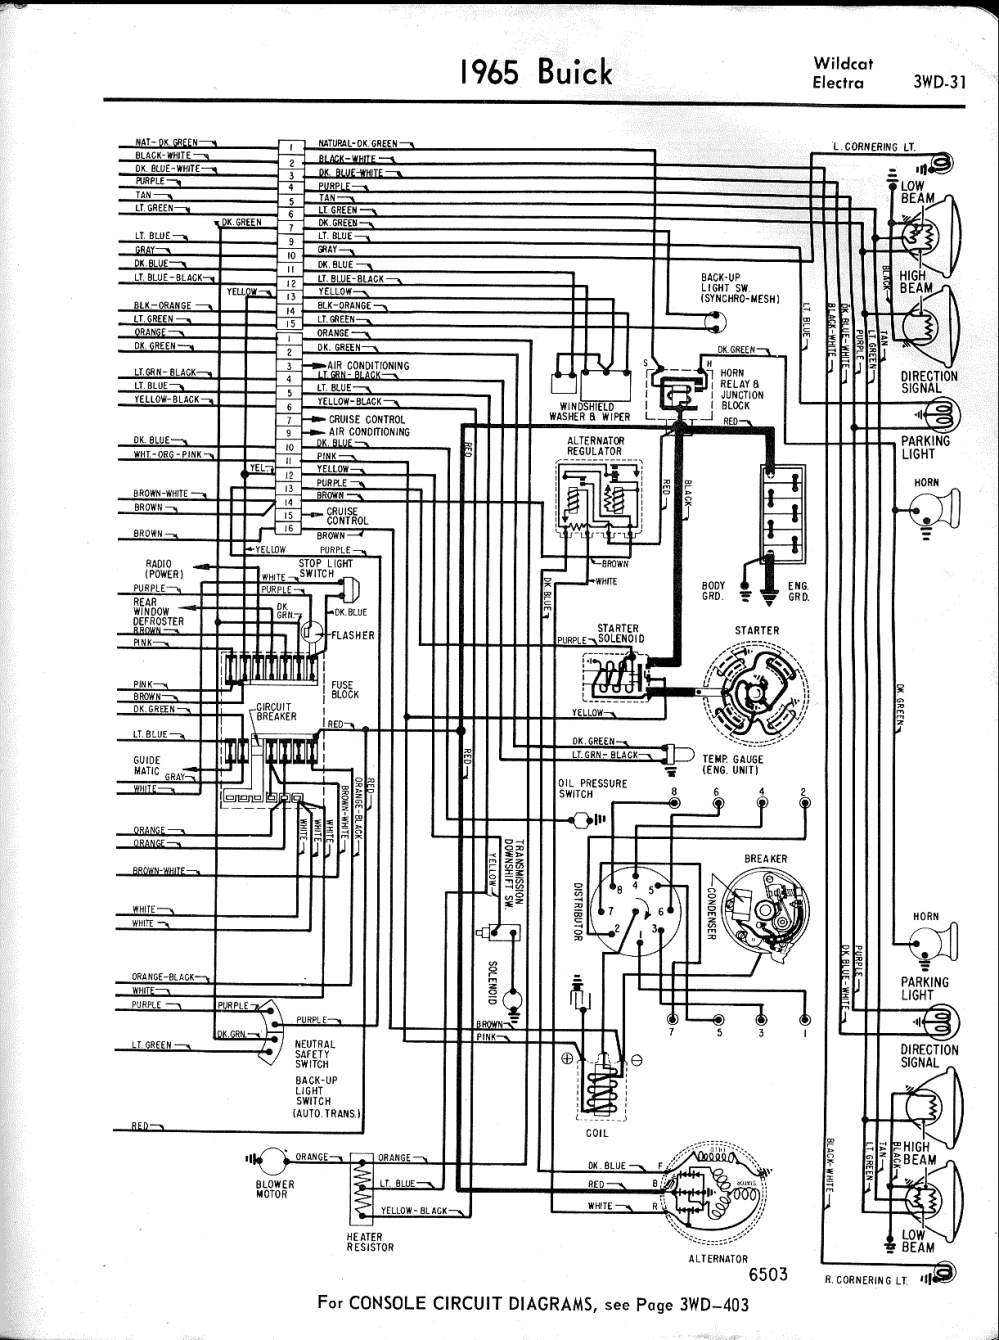 medium resolution of buick wiring diagrams 1957 1965 1965 wildcat electra left half